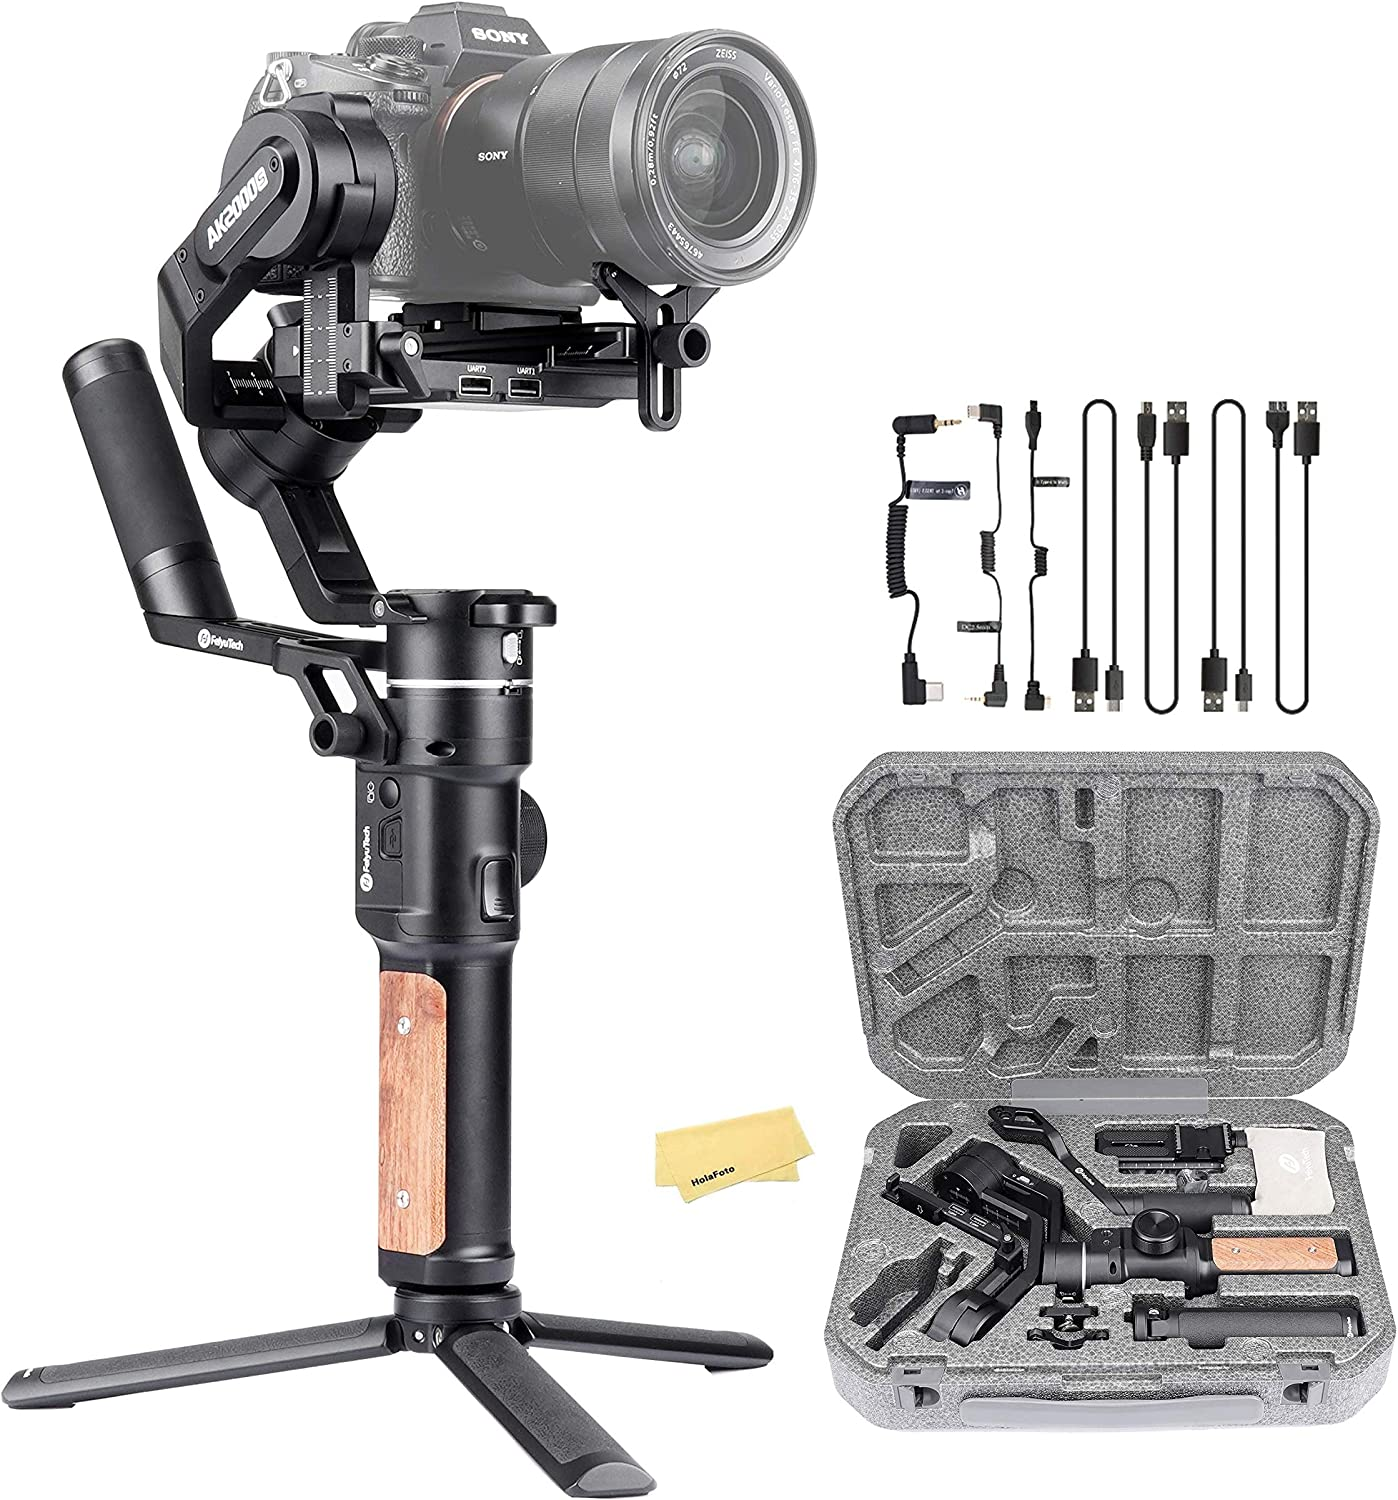 Feiyu AK2000 S Ak2000S 3 Axis Handheld Gimbal Stabilizer for Sony a9 a7 ii a6500 Series Canon 5D Panasonic GH5 GH4 Nikon D850 Mirrorless and DSLR Digital Camera, Smart Touch Panel